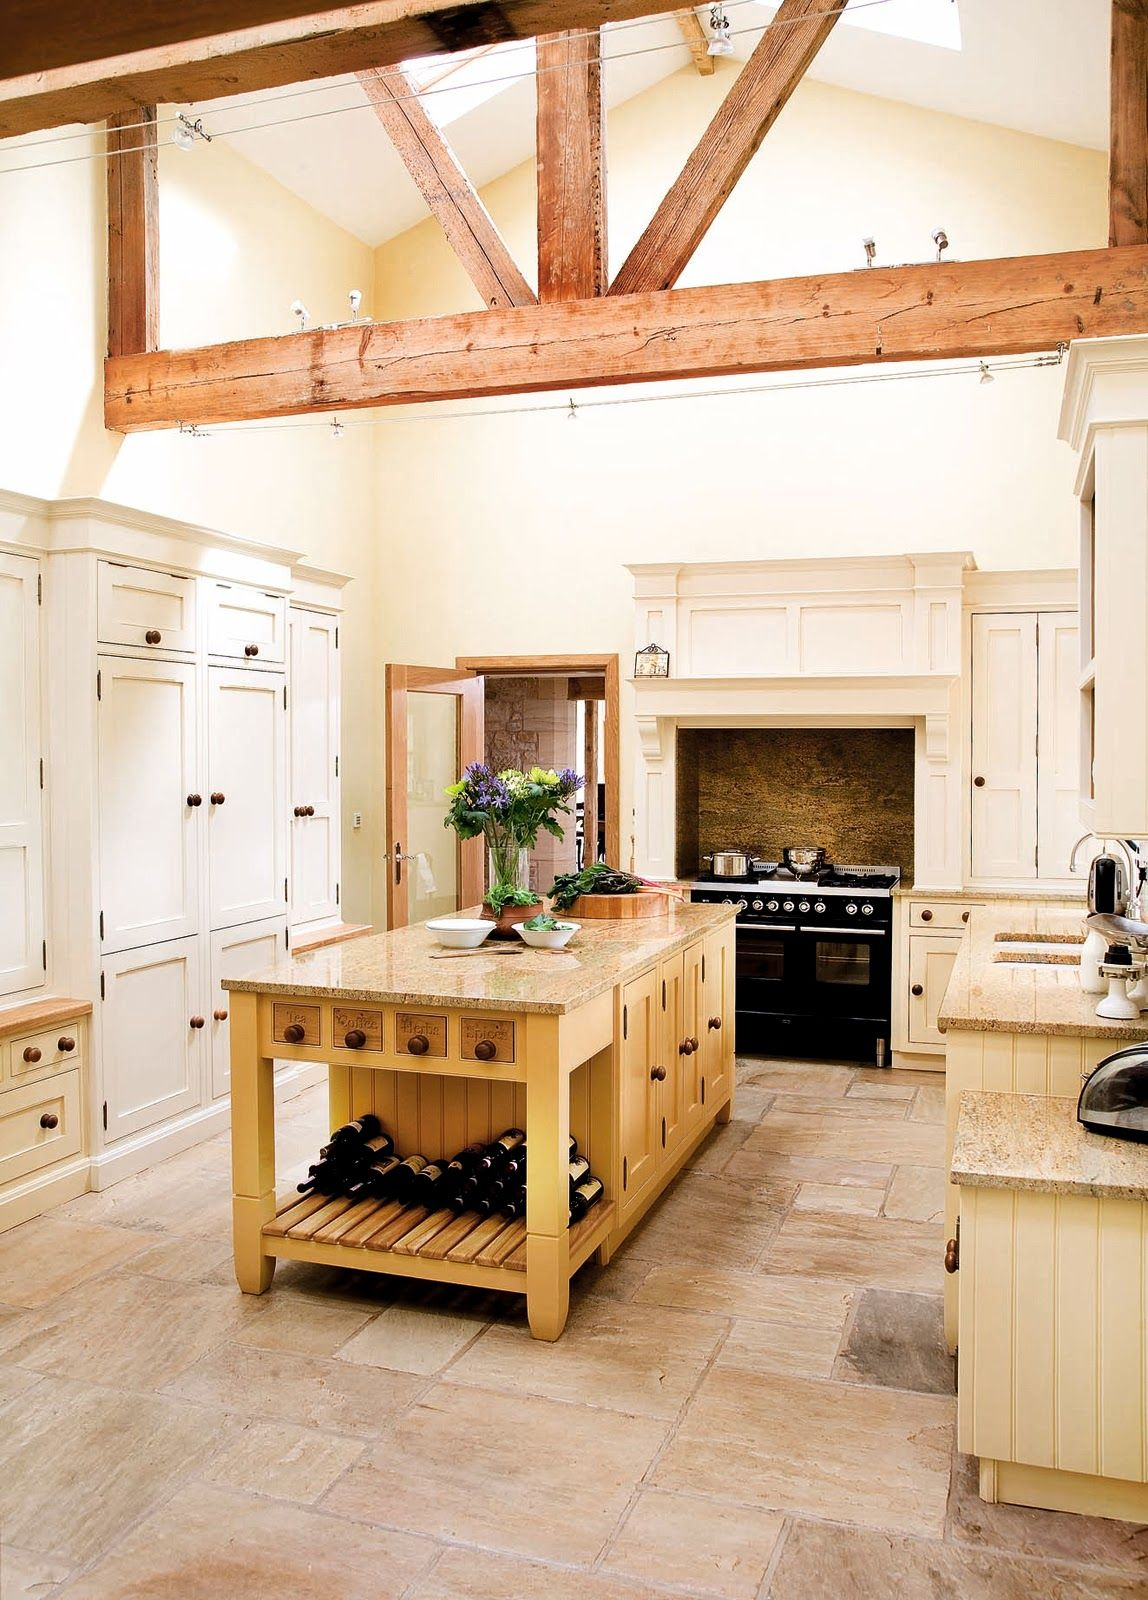 English Country Style Kitchens  For The Home  Pinterest Stunning Kitchen Design Country Style Design Inspiration